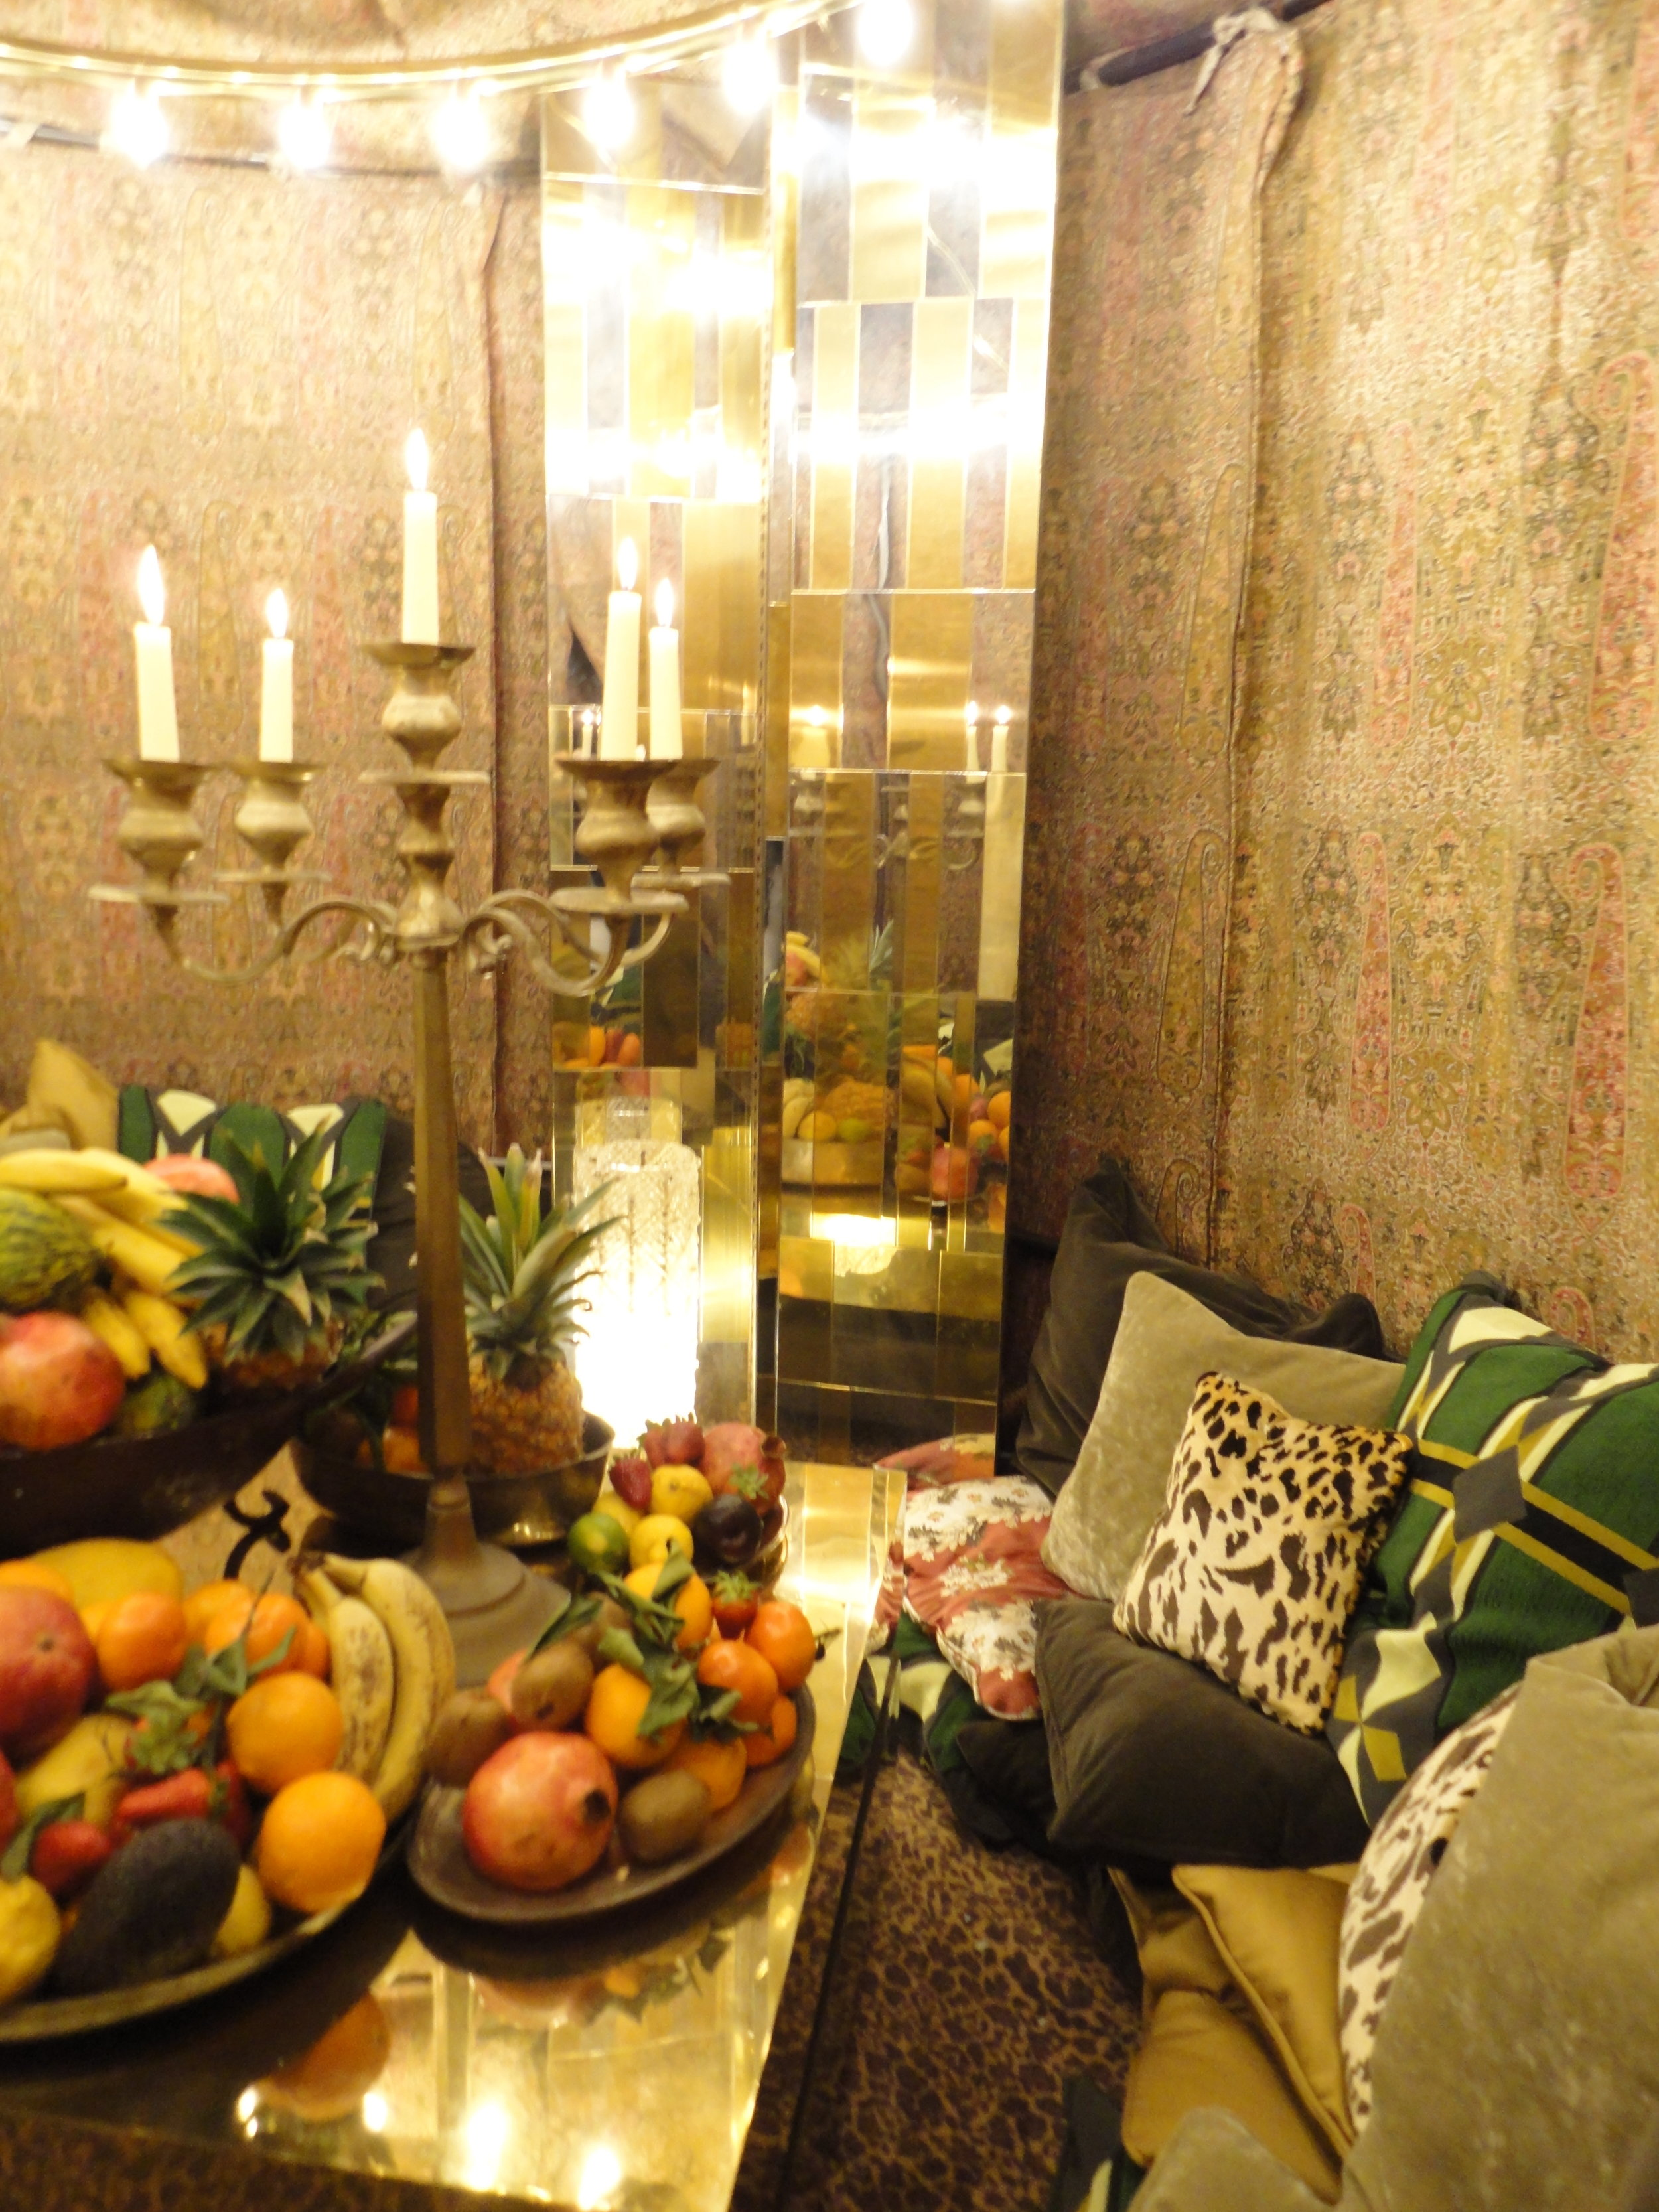 One of the tents decorated decadently in a Moroccan style feast for the eyes